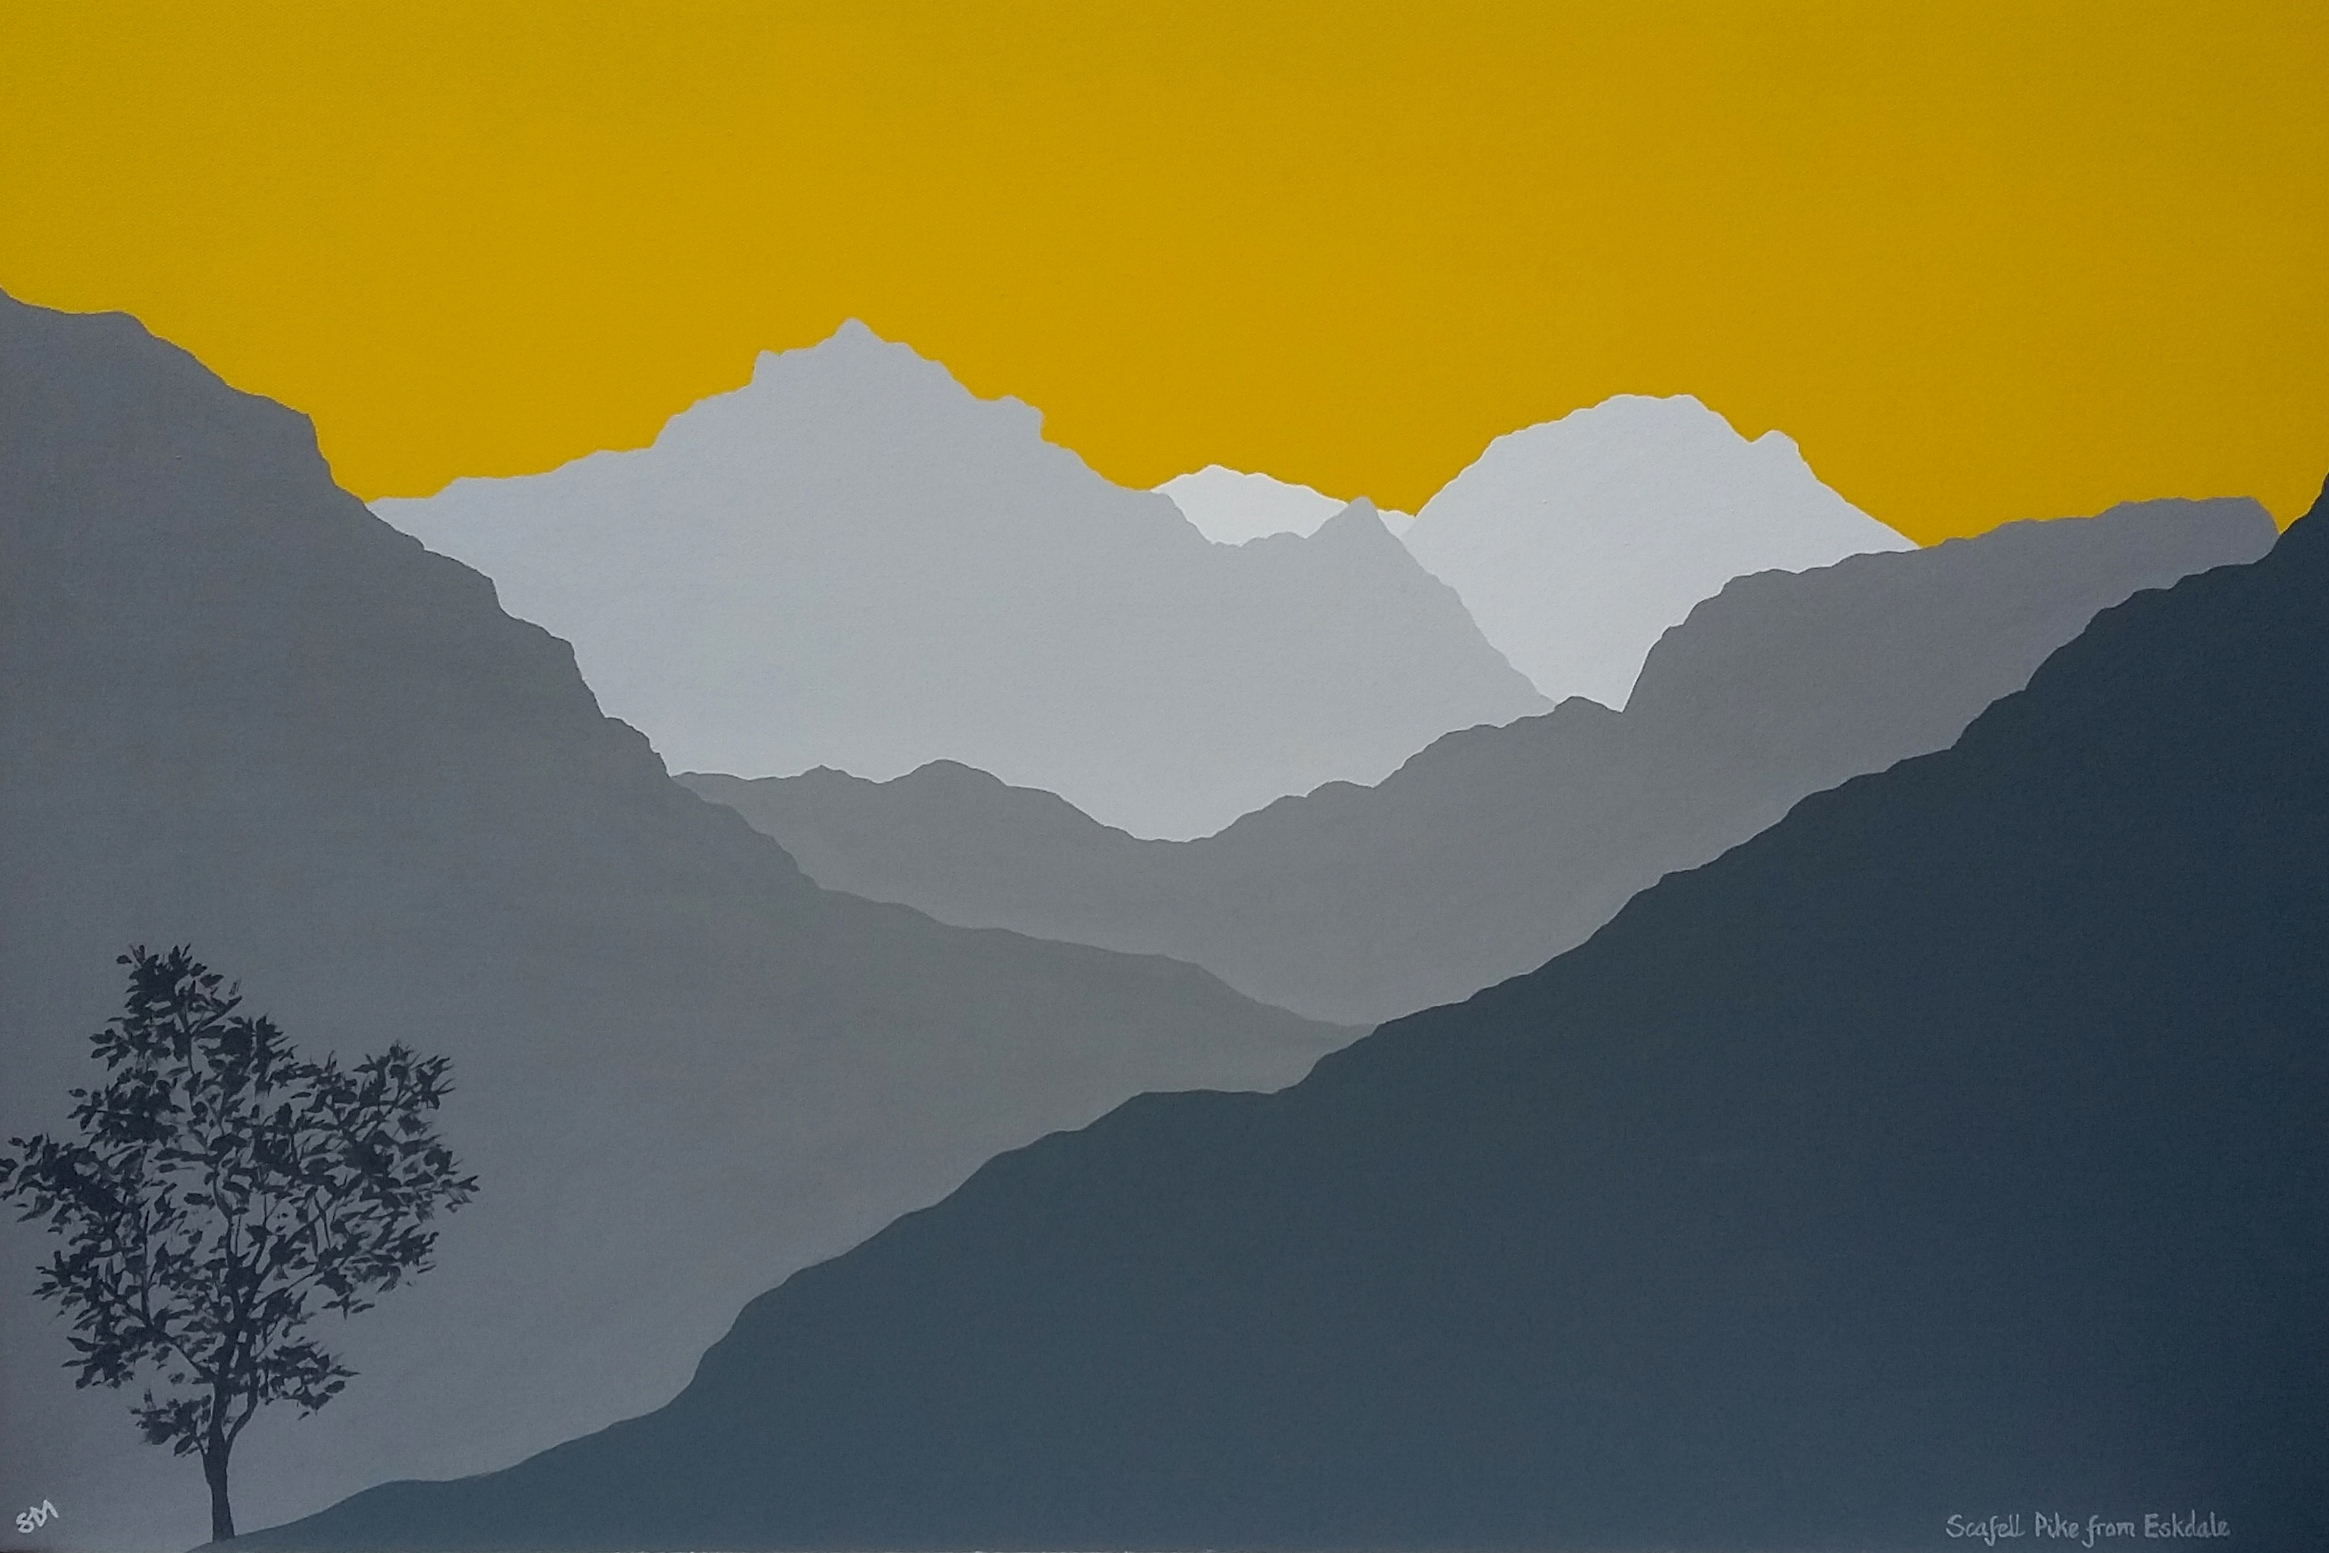 SOLD Scafell Pike from Eskdale